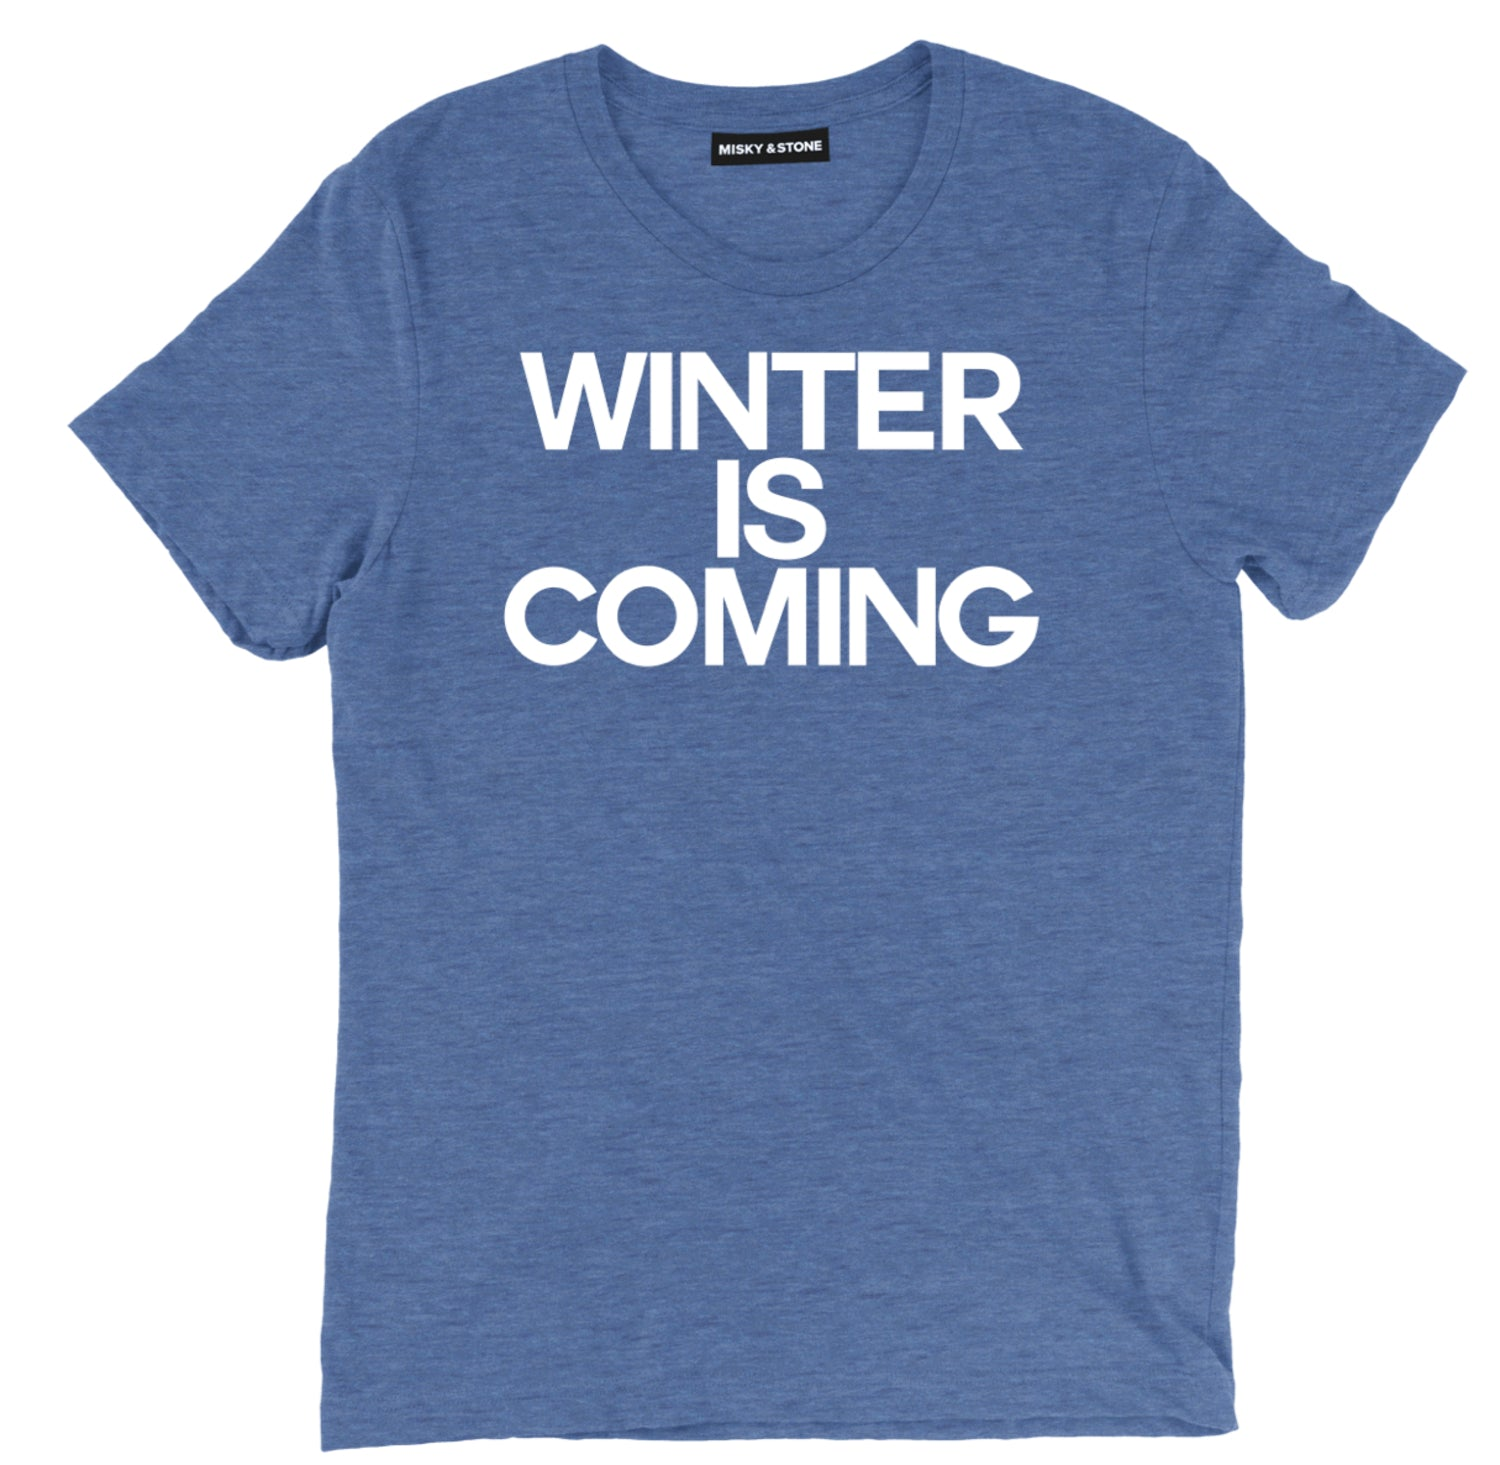 winter is coming tee, winter tee, game of thrones t shirt, winter is coming game of thrones tee